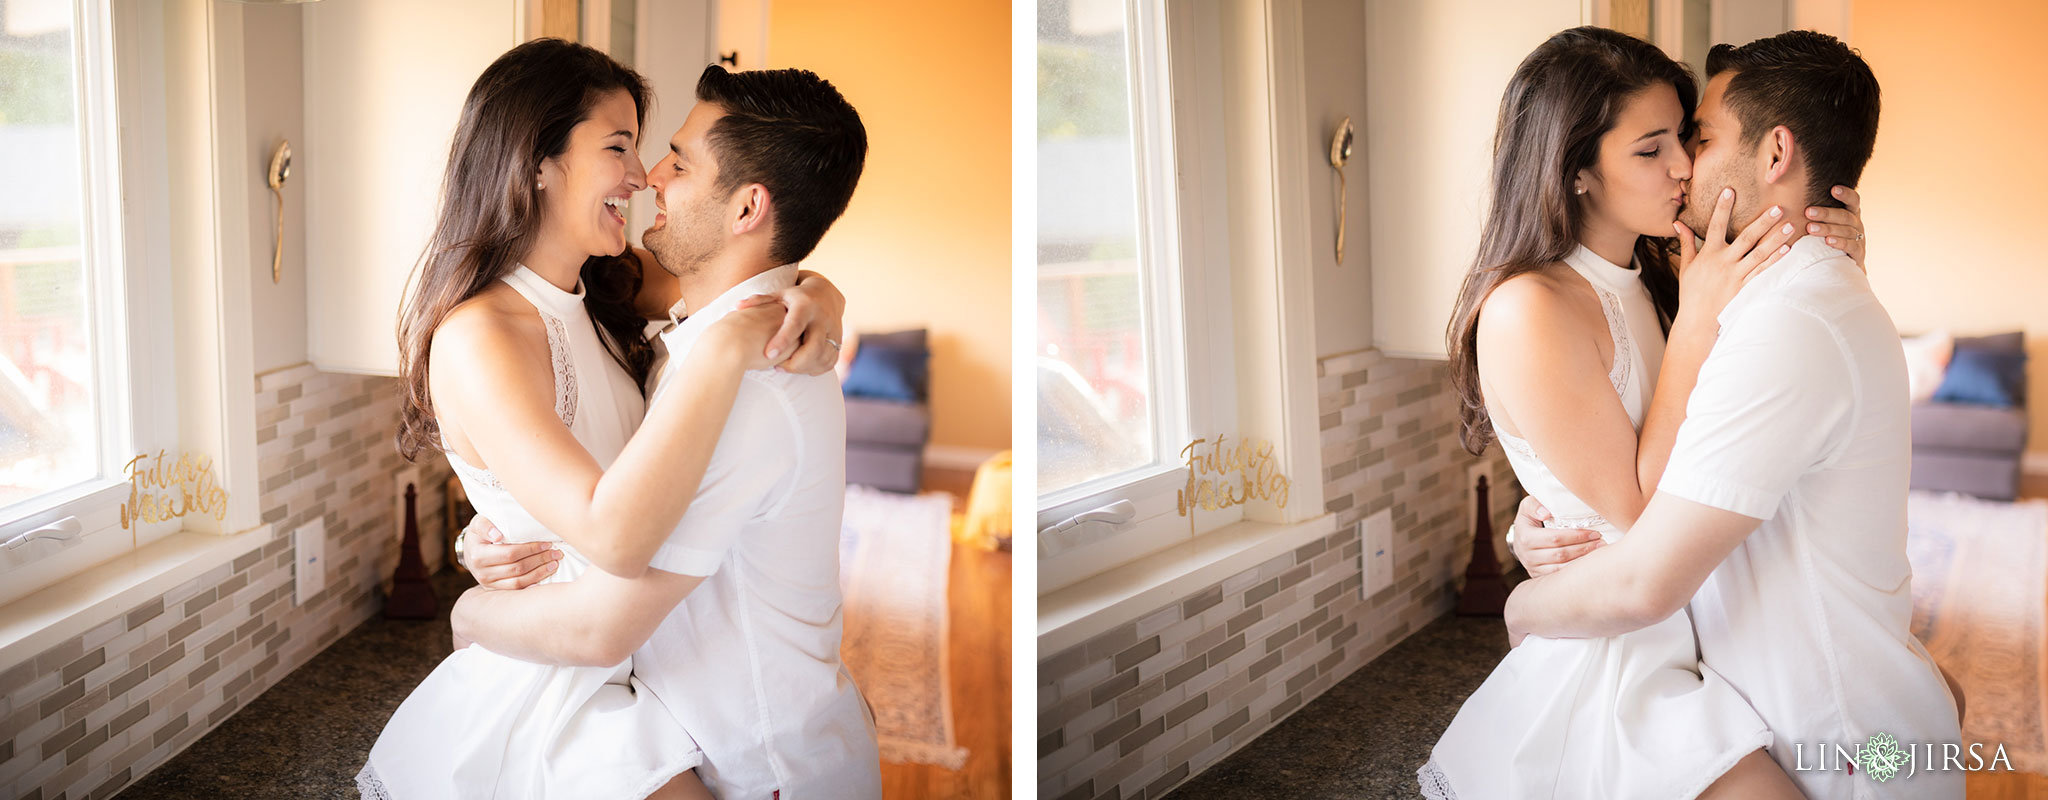 15 los angeles country home engagement photography